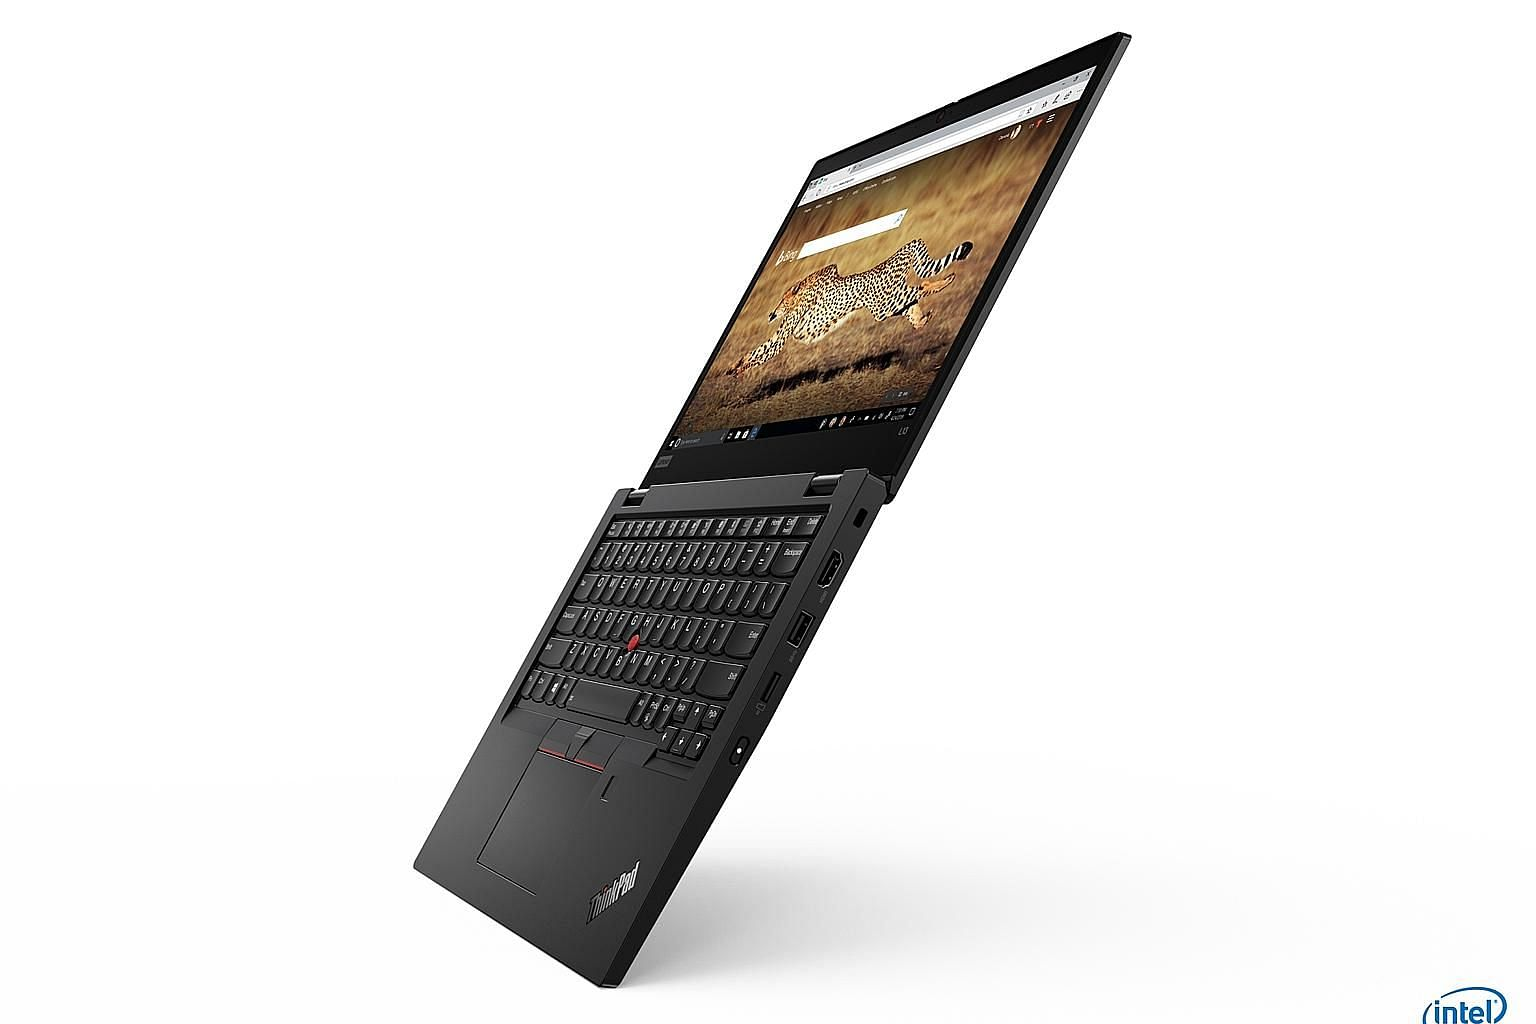 The ThinkPad L13 is a clamshell notebook with sturdy hinges that can open to 180 degrees, thus allowing it to open flat on a desk.